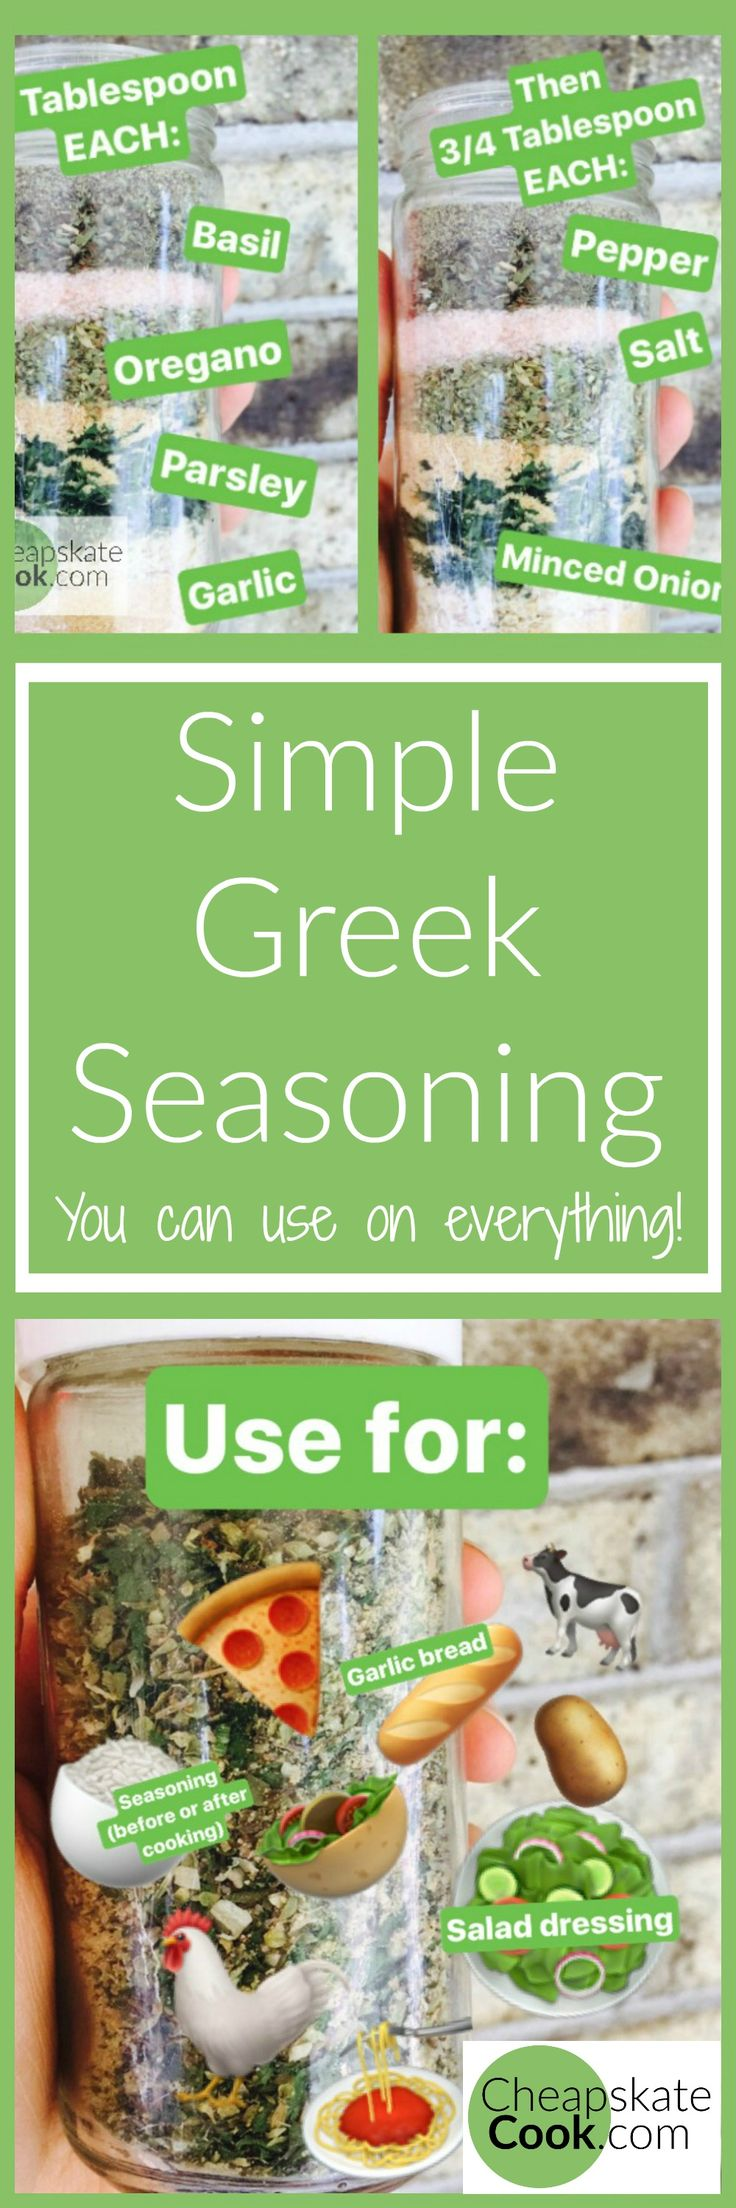 The only All-Purpose Seasoning I use - Simple Greek Seasoning for chicken, beef, vegetables, pasta, pizza, potatoes, rice, salad dressing, and more! Easy and Cheap - 50 cents per bottle. From CheapskateCook.com